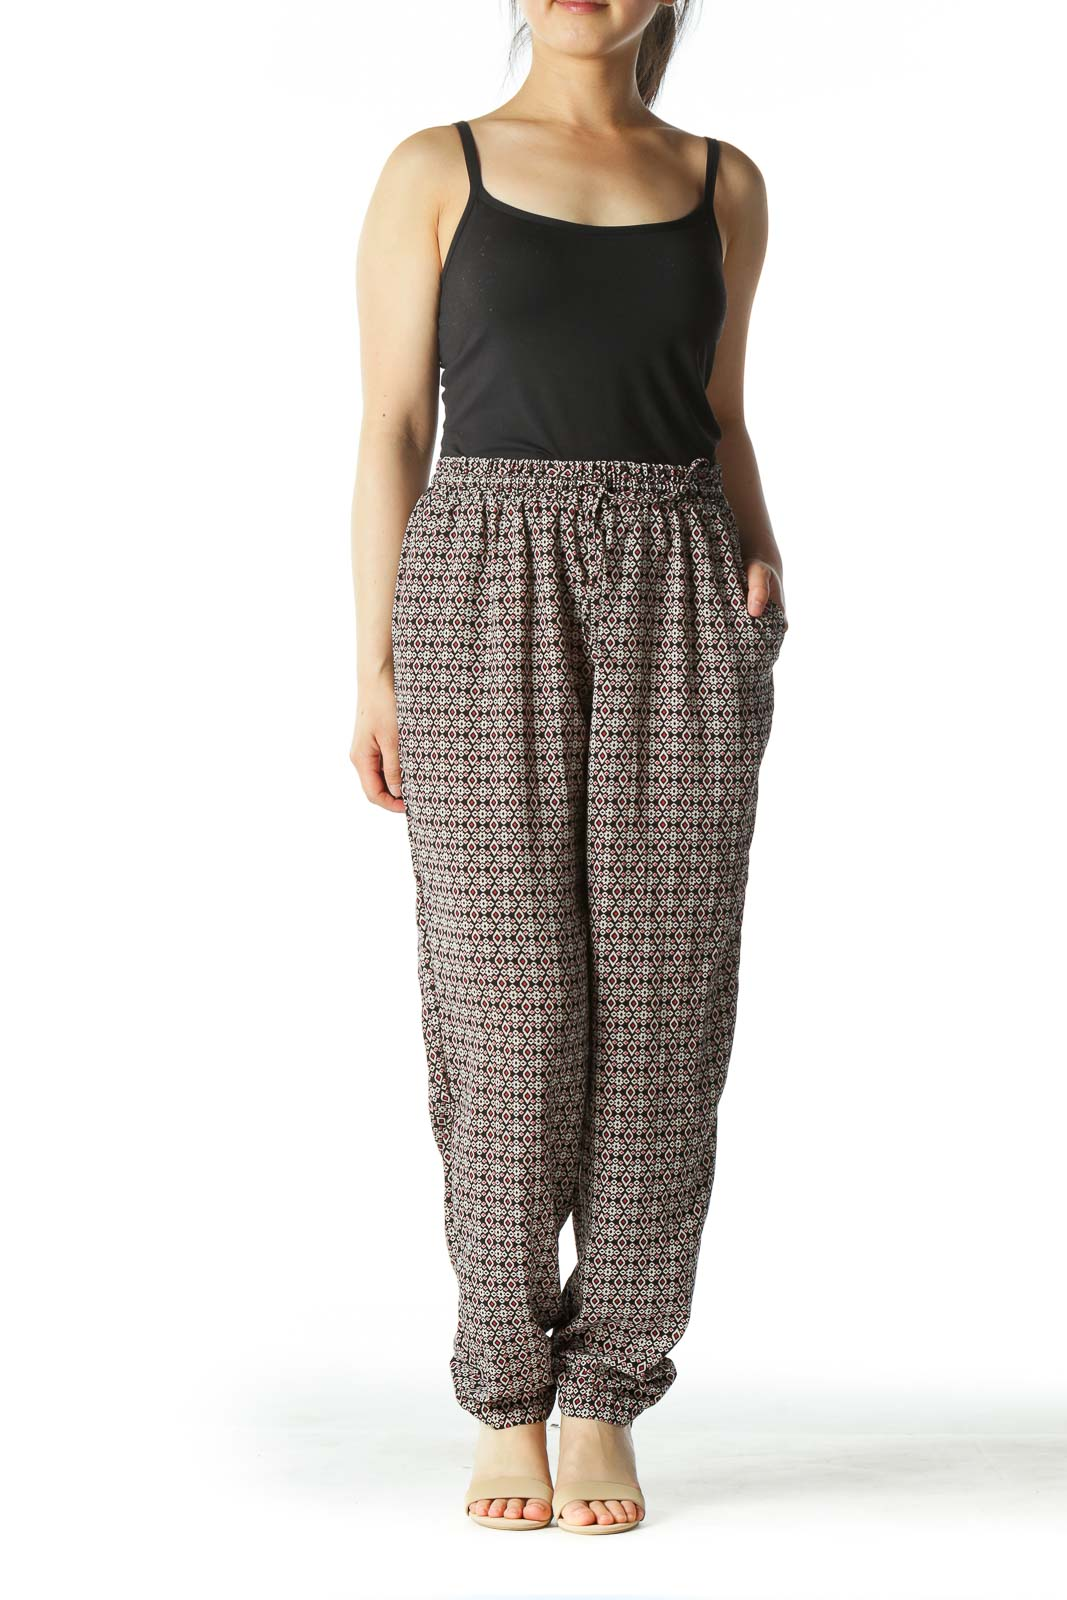 Multicolored Graphic Print High-Waisted Gaucho Pants